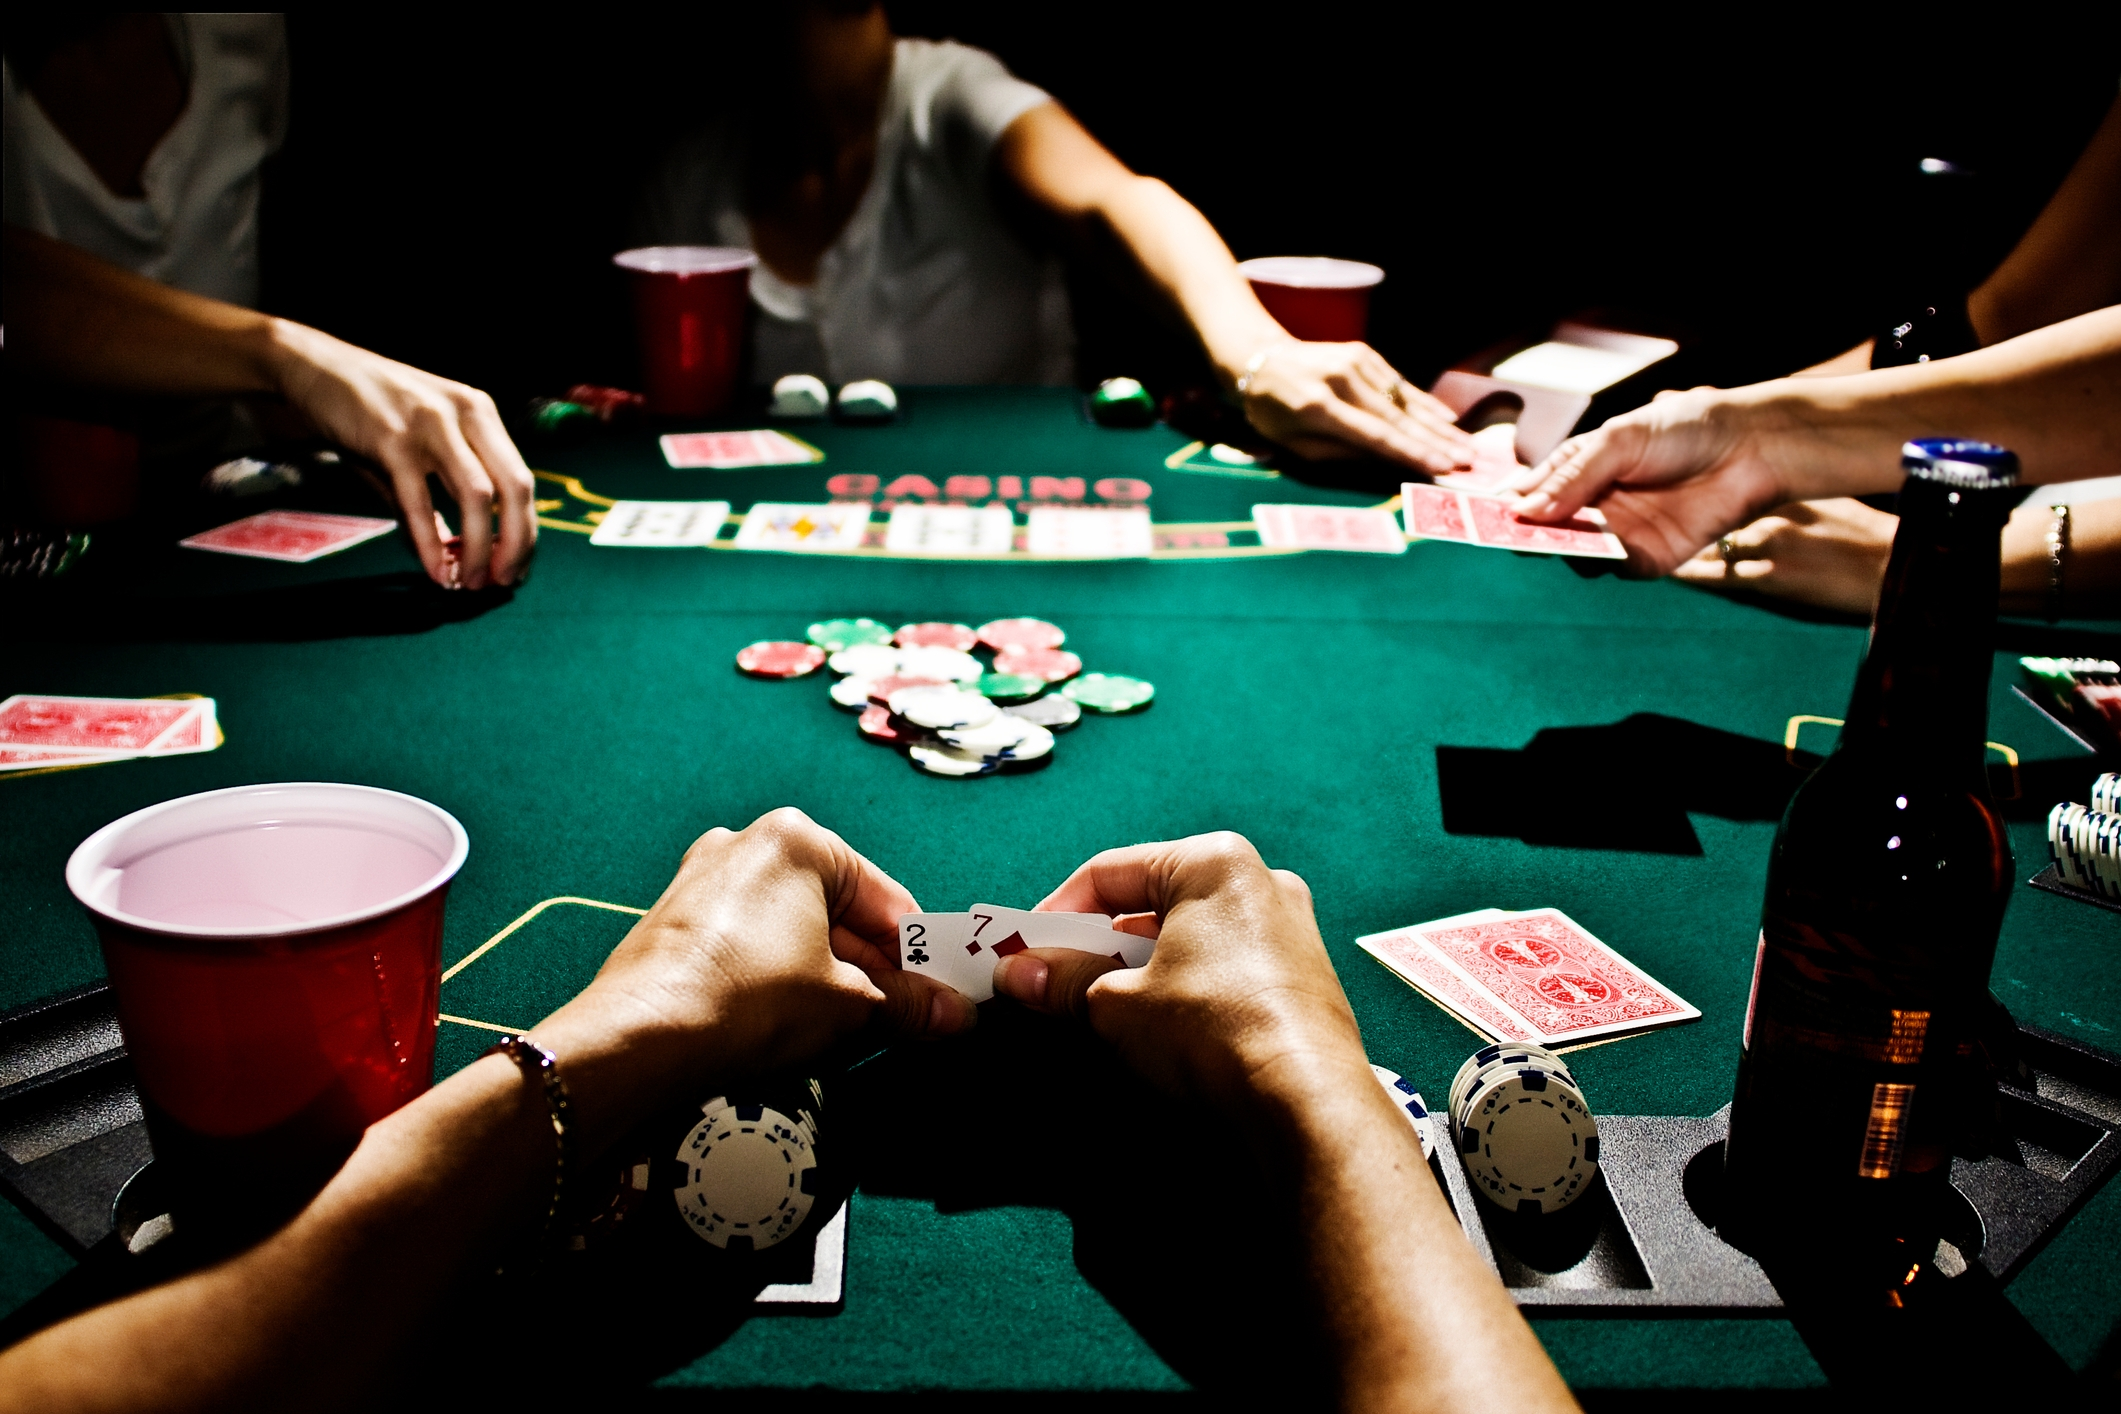 History of the game of craps